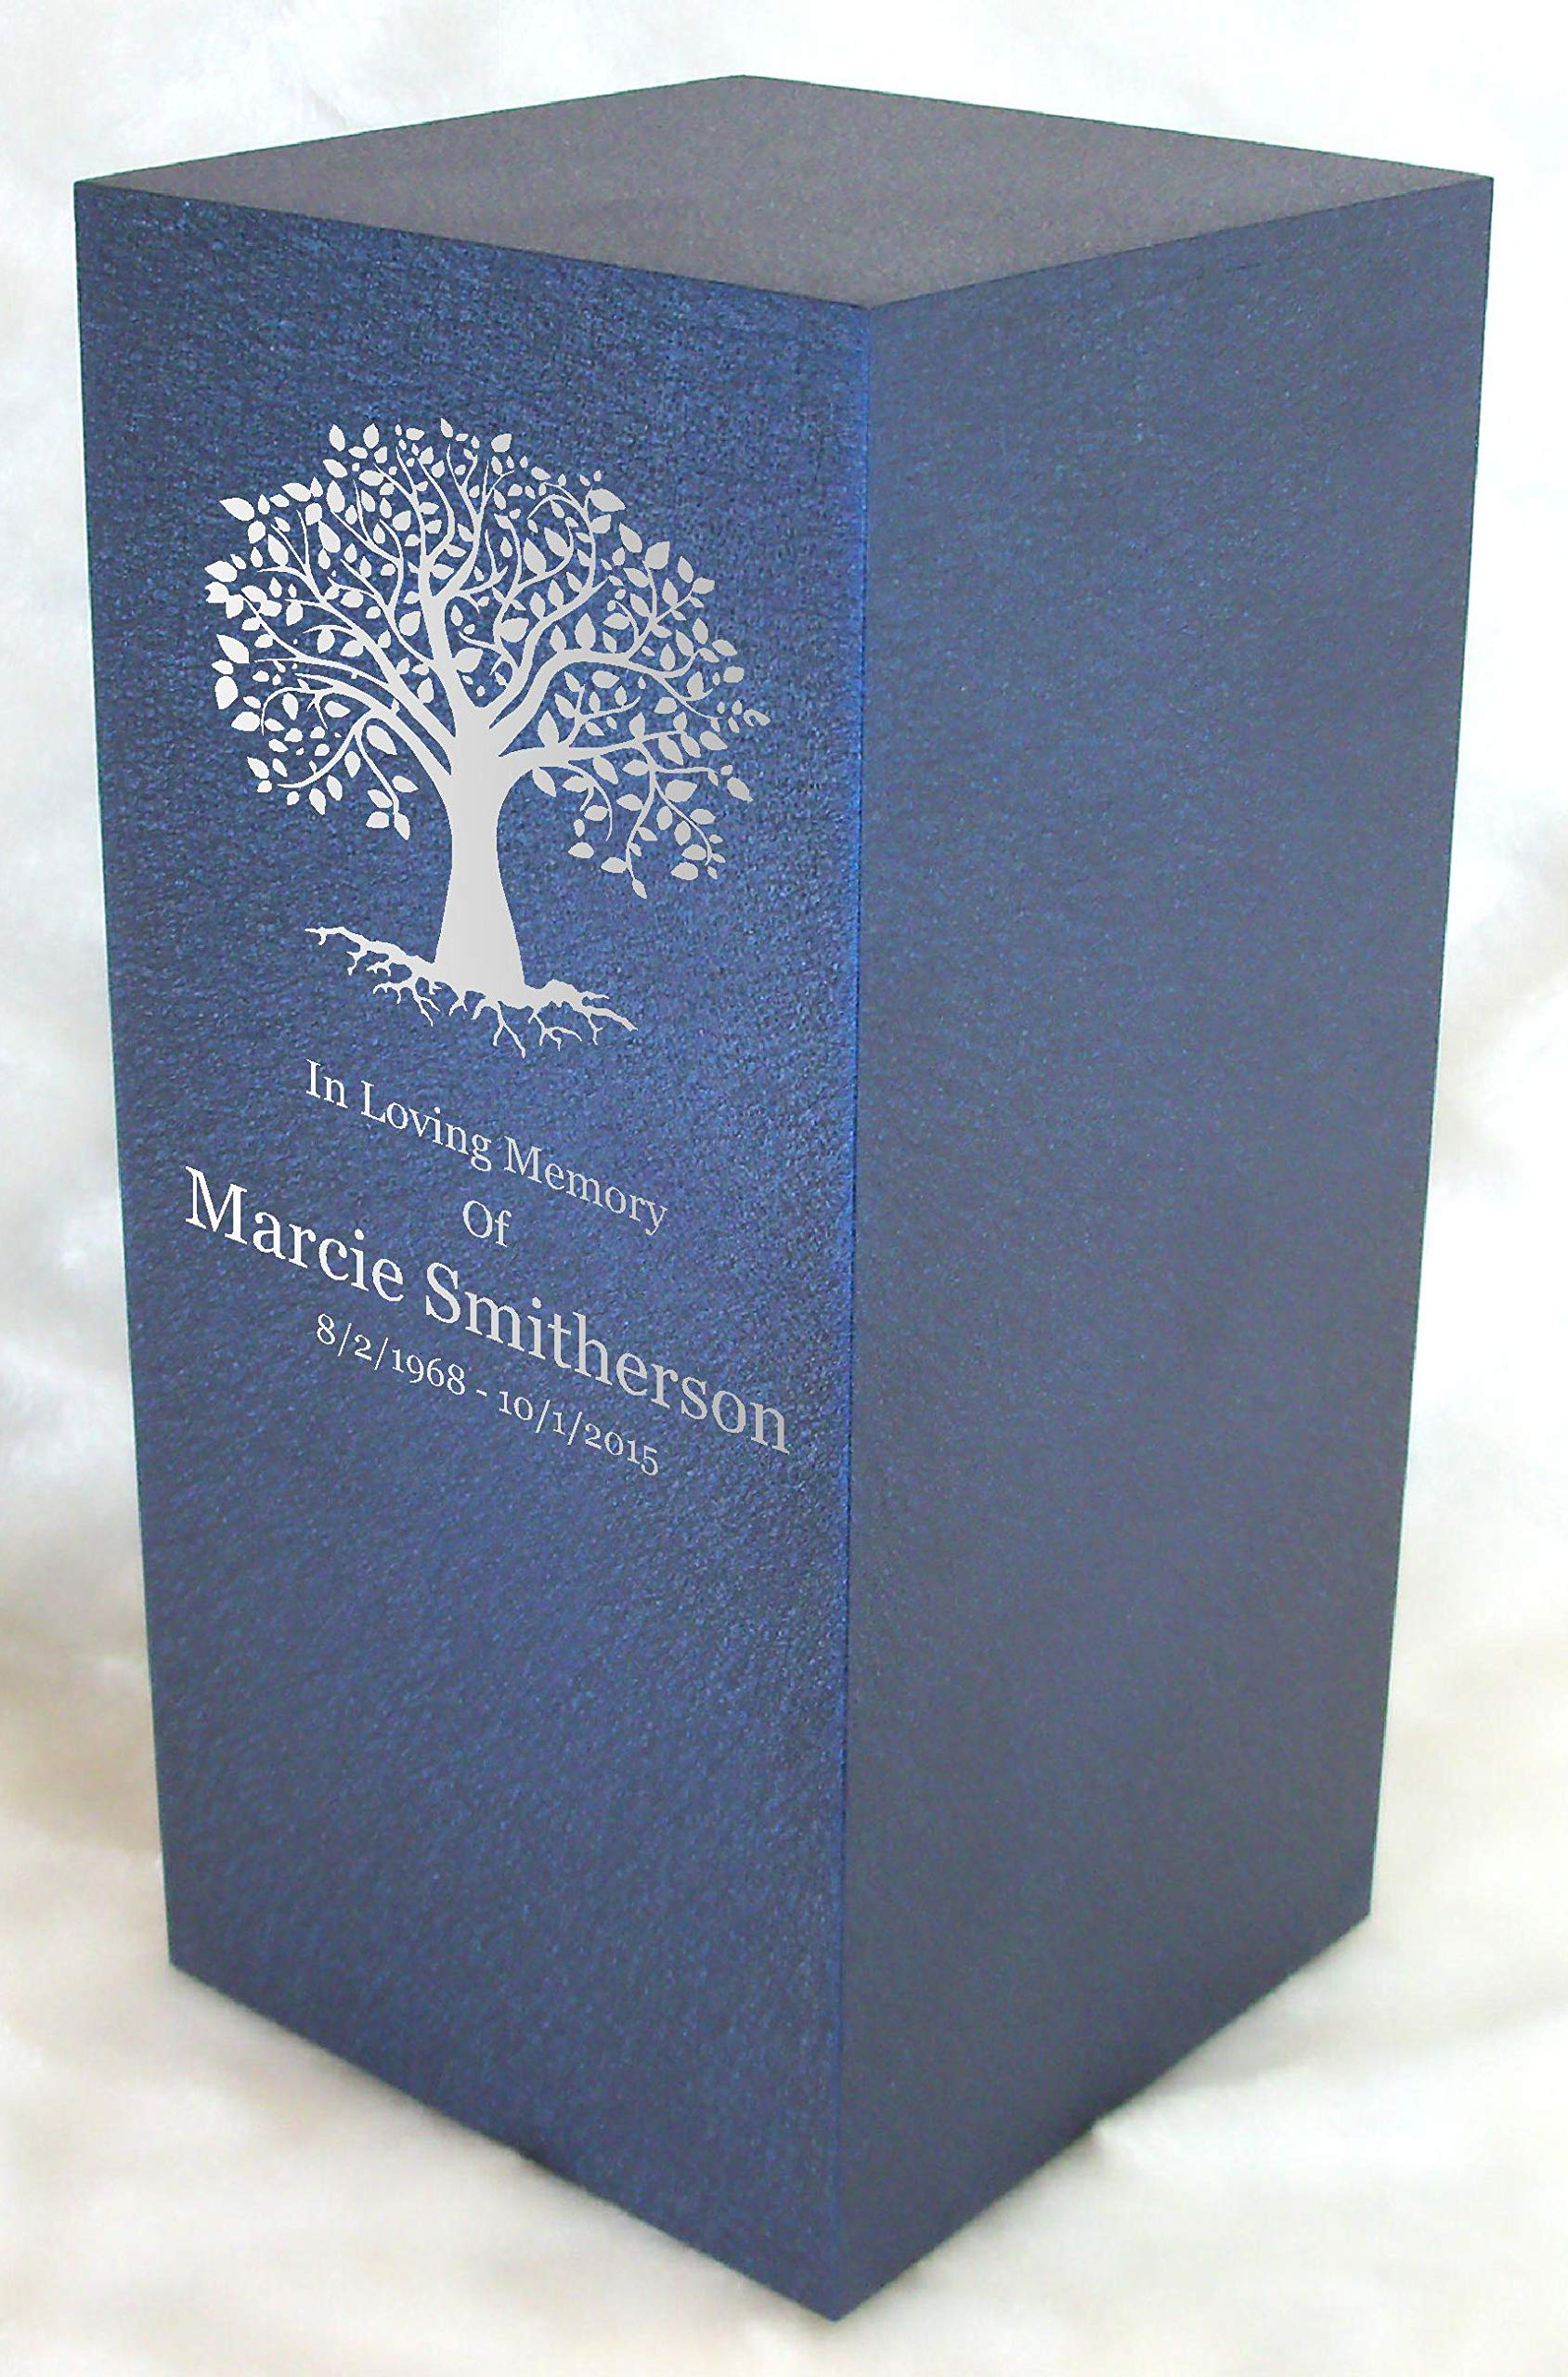 Personalized Engraved Tree of Life Cremation Urn for Human Ashes -Made in America- Handcrafted in The USA by Amaranthine Urns, Adult Funeral Urn -Eaton DL-up to 200 lbs Living Weight (Deep Sea Blue)